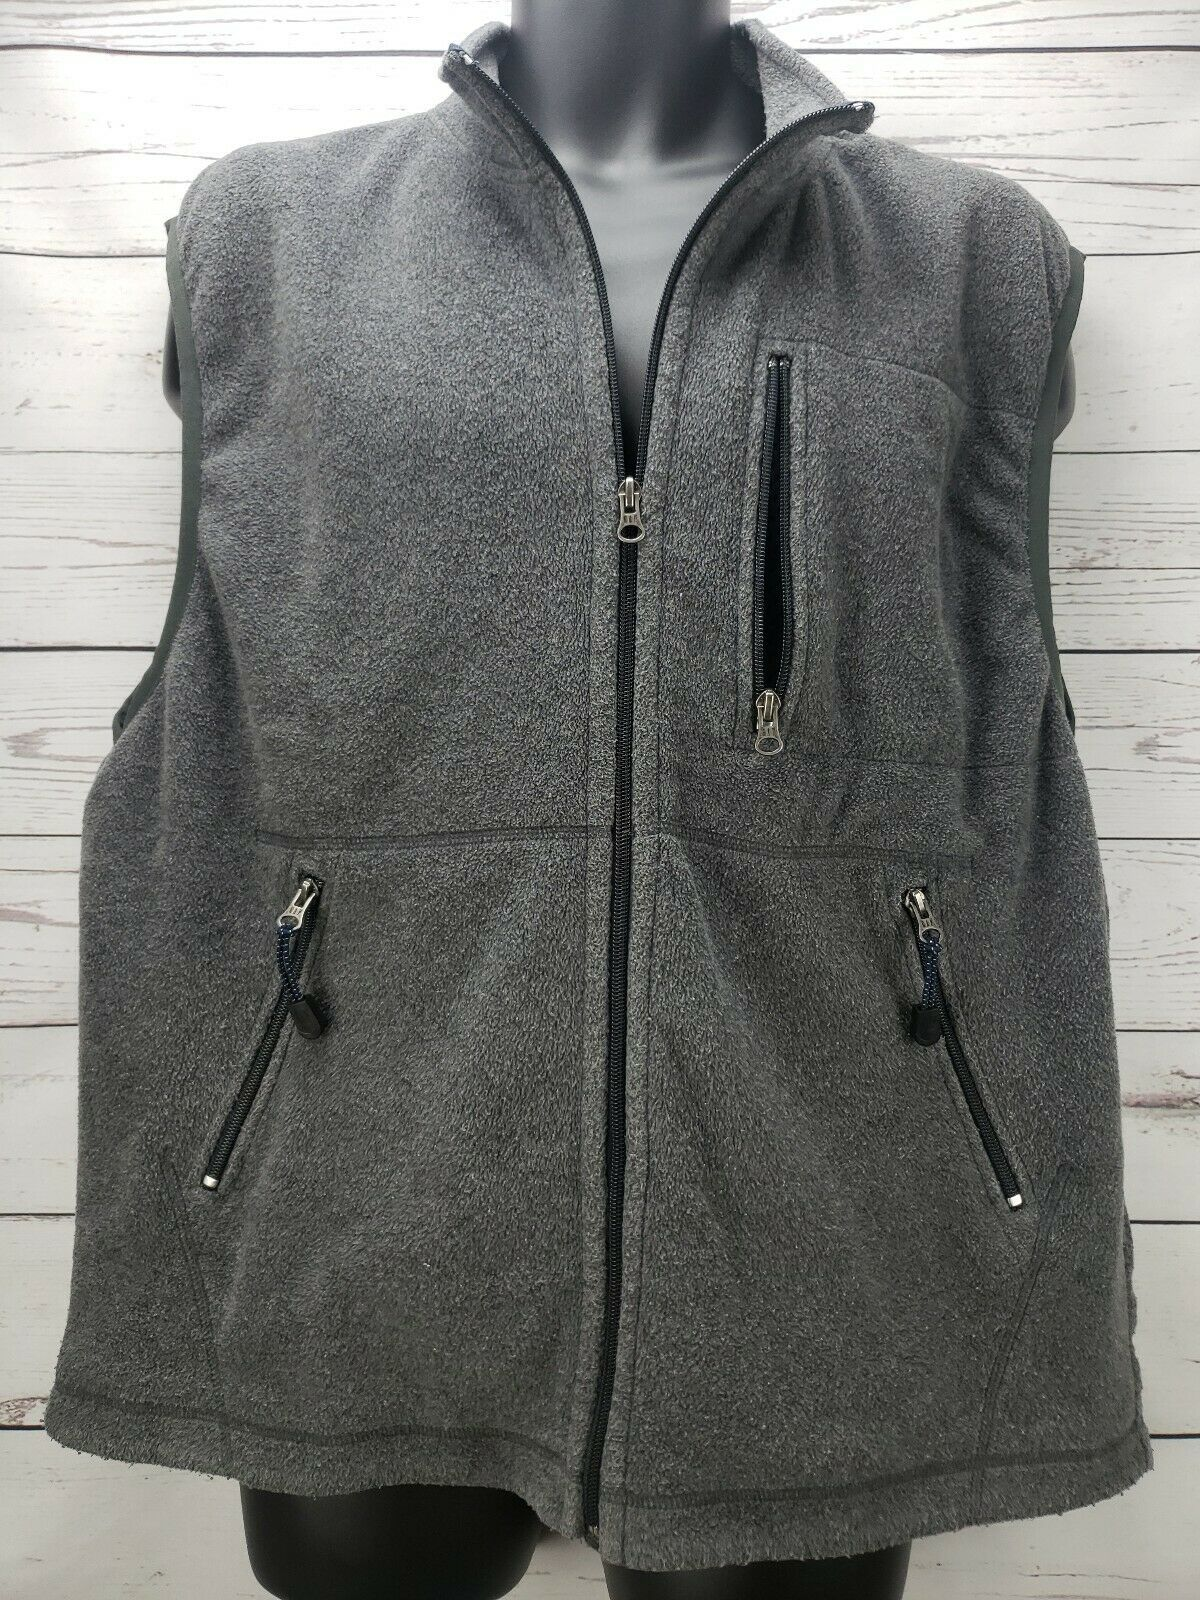 Gap Men's Size XL Full Zip Gray Sleeveless Fleece Vest